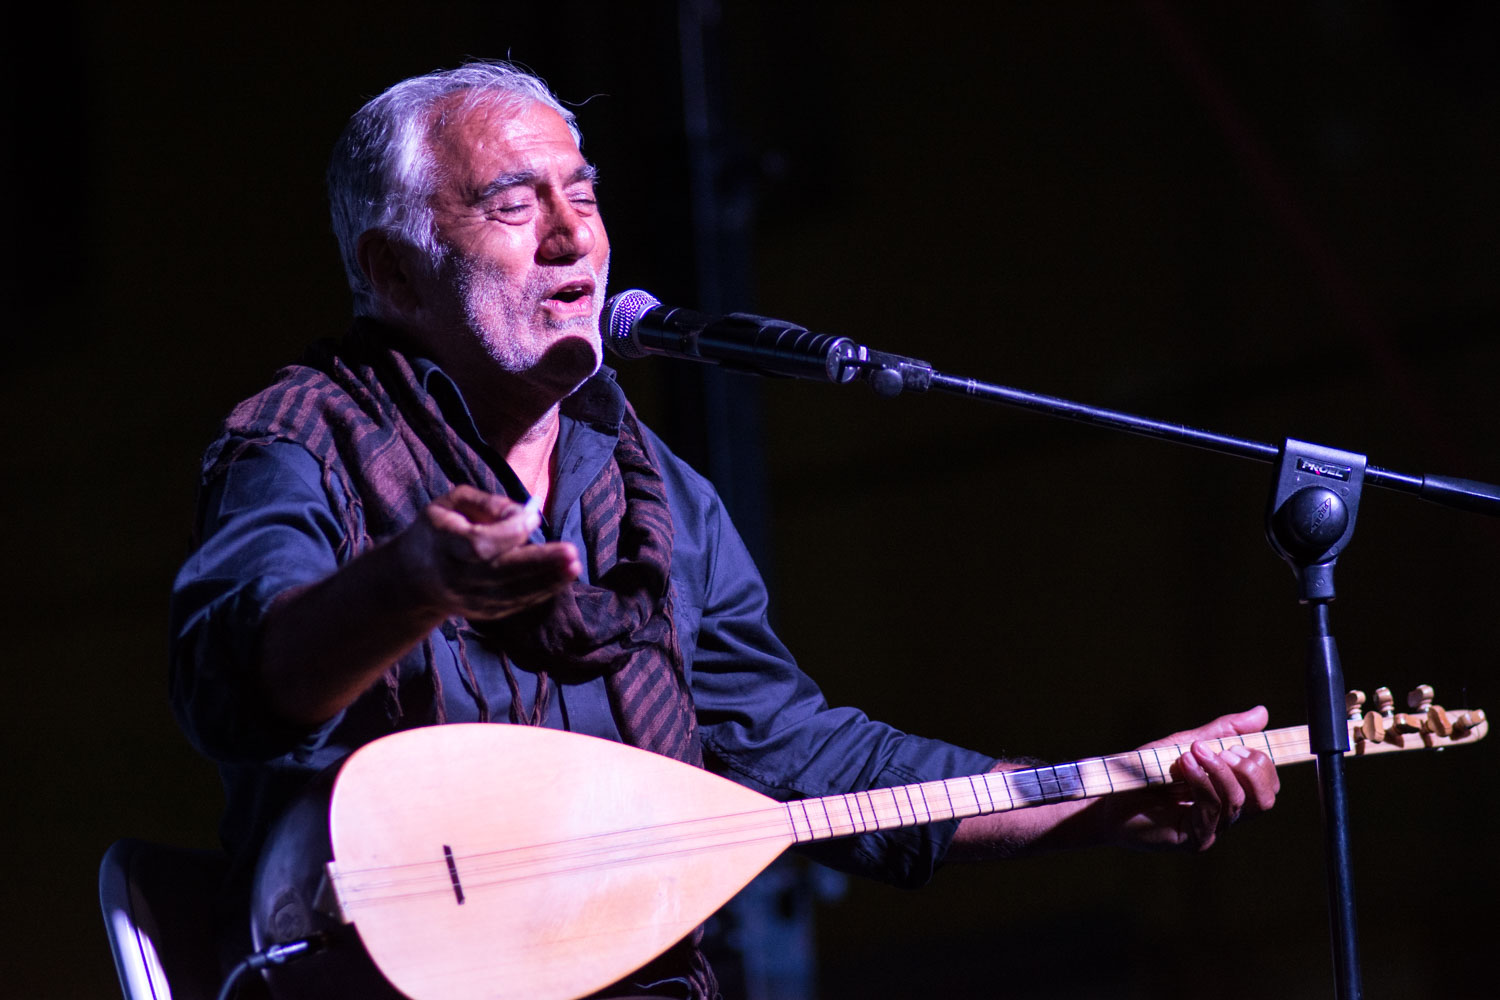 Ali Baran, master of the bağlama, performs at the 2014 Munzur Festival